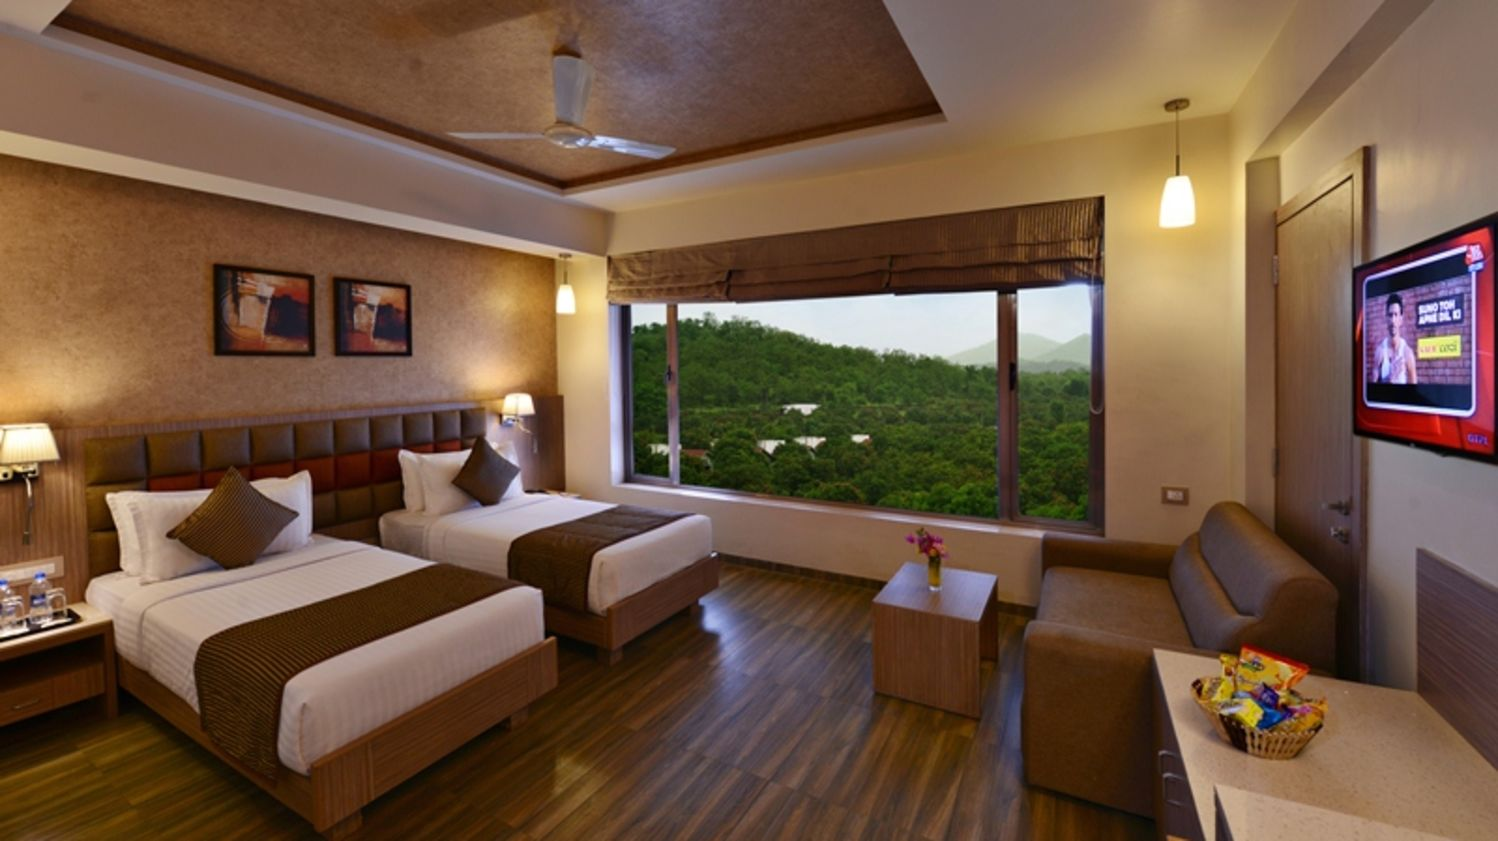 Twin Bed Rooms at Our Hotel in Sasan Gir, Stay near Gir National Park, Sarovar Portico, Sasan Gir